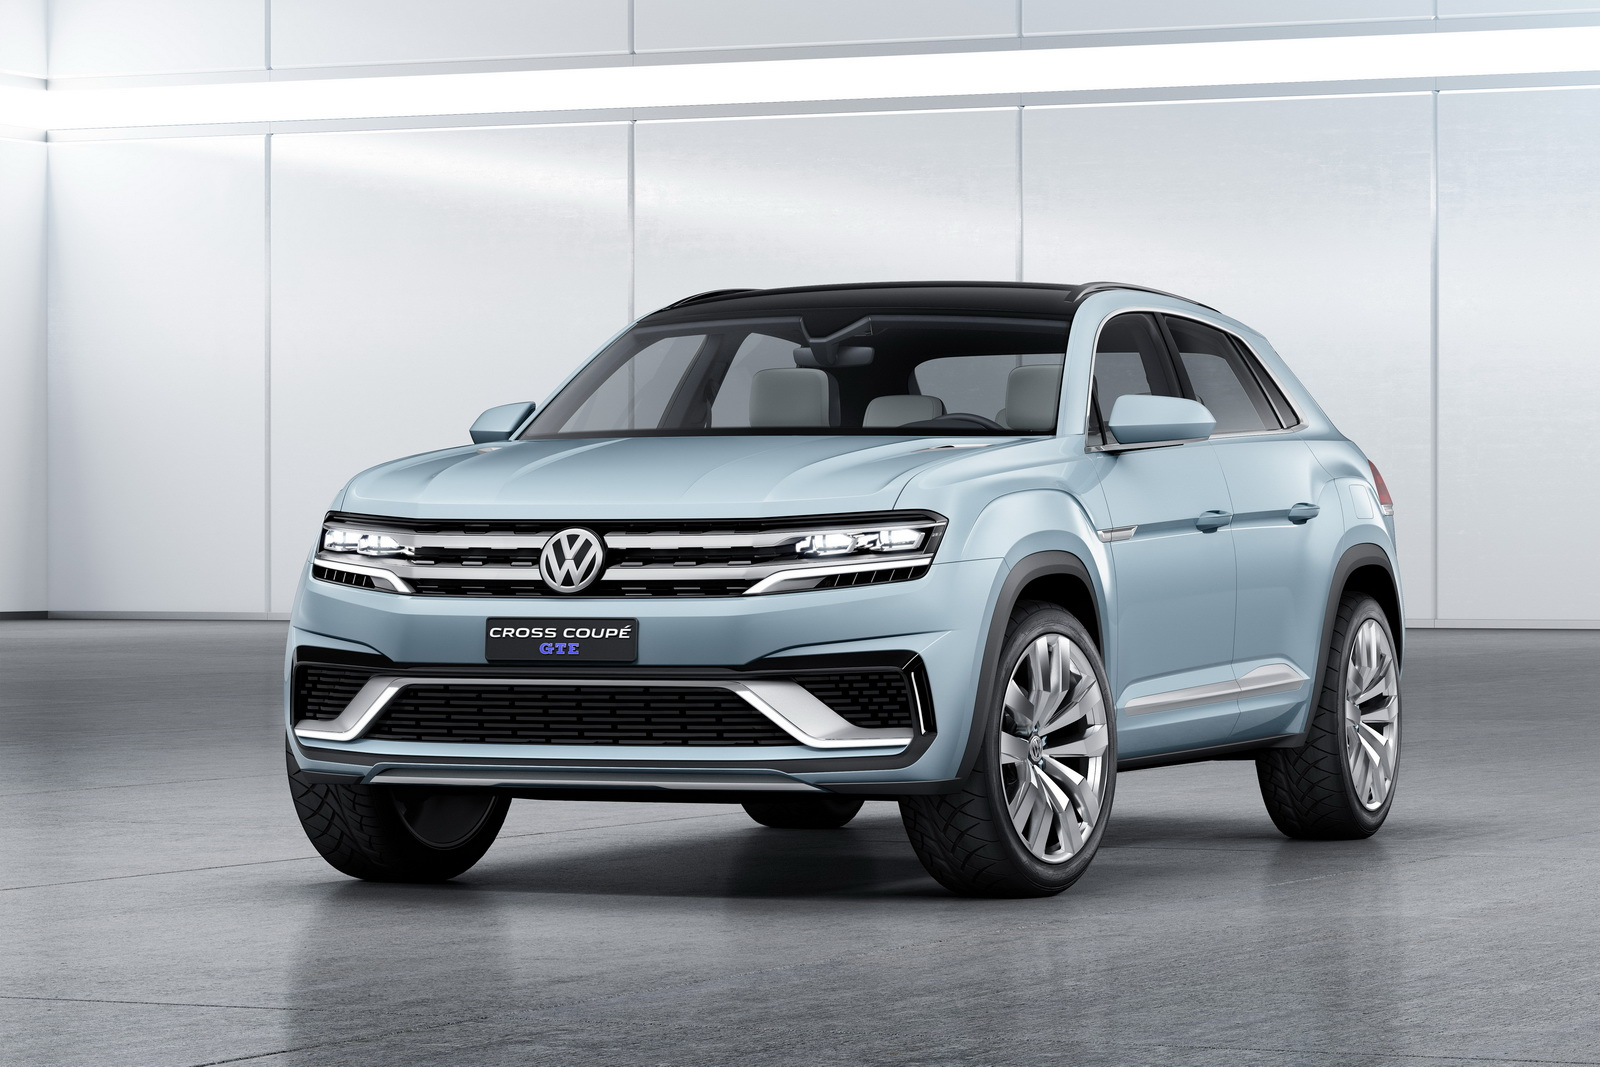 2018 Volkswagen CrossBlue Coupe Concept photo - 1